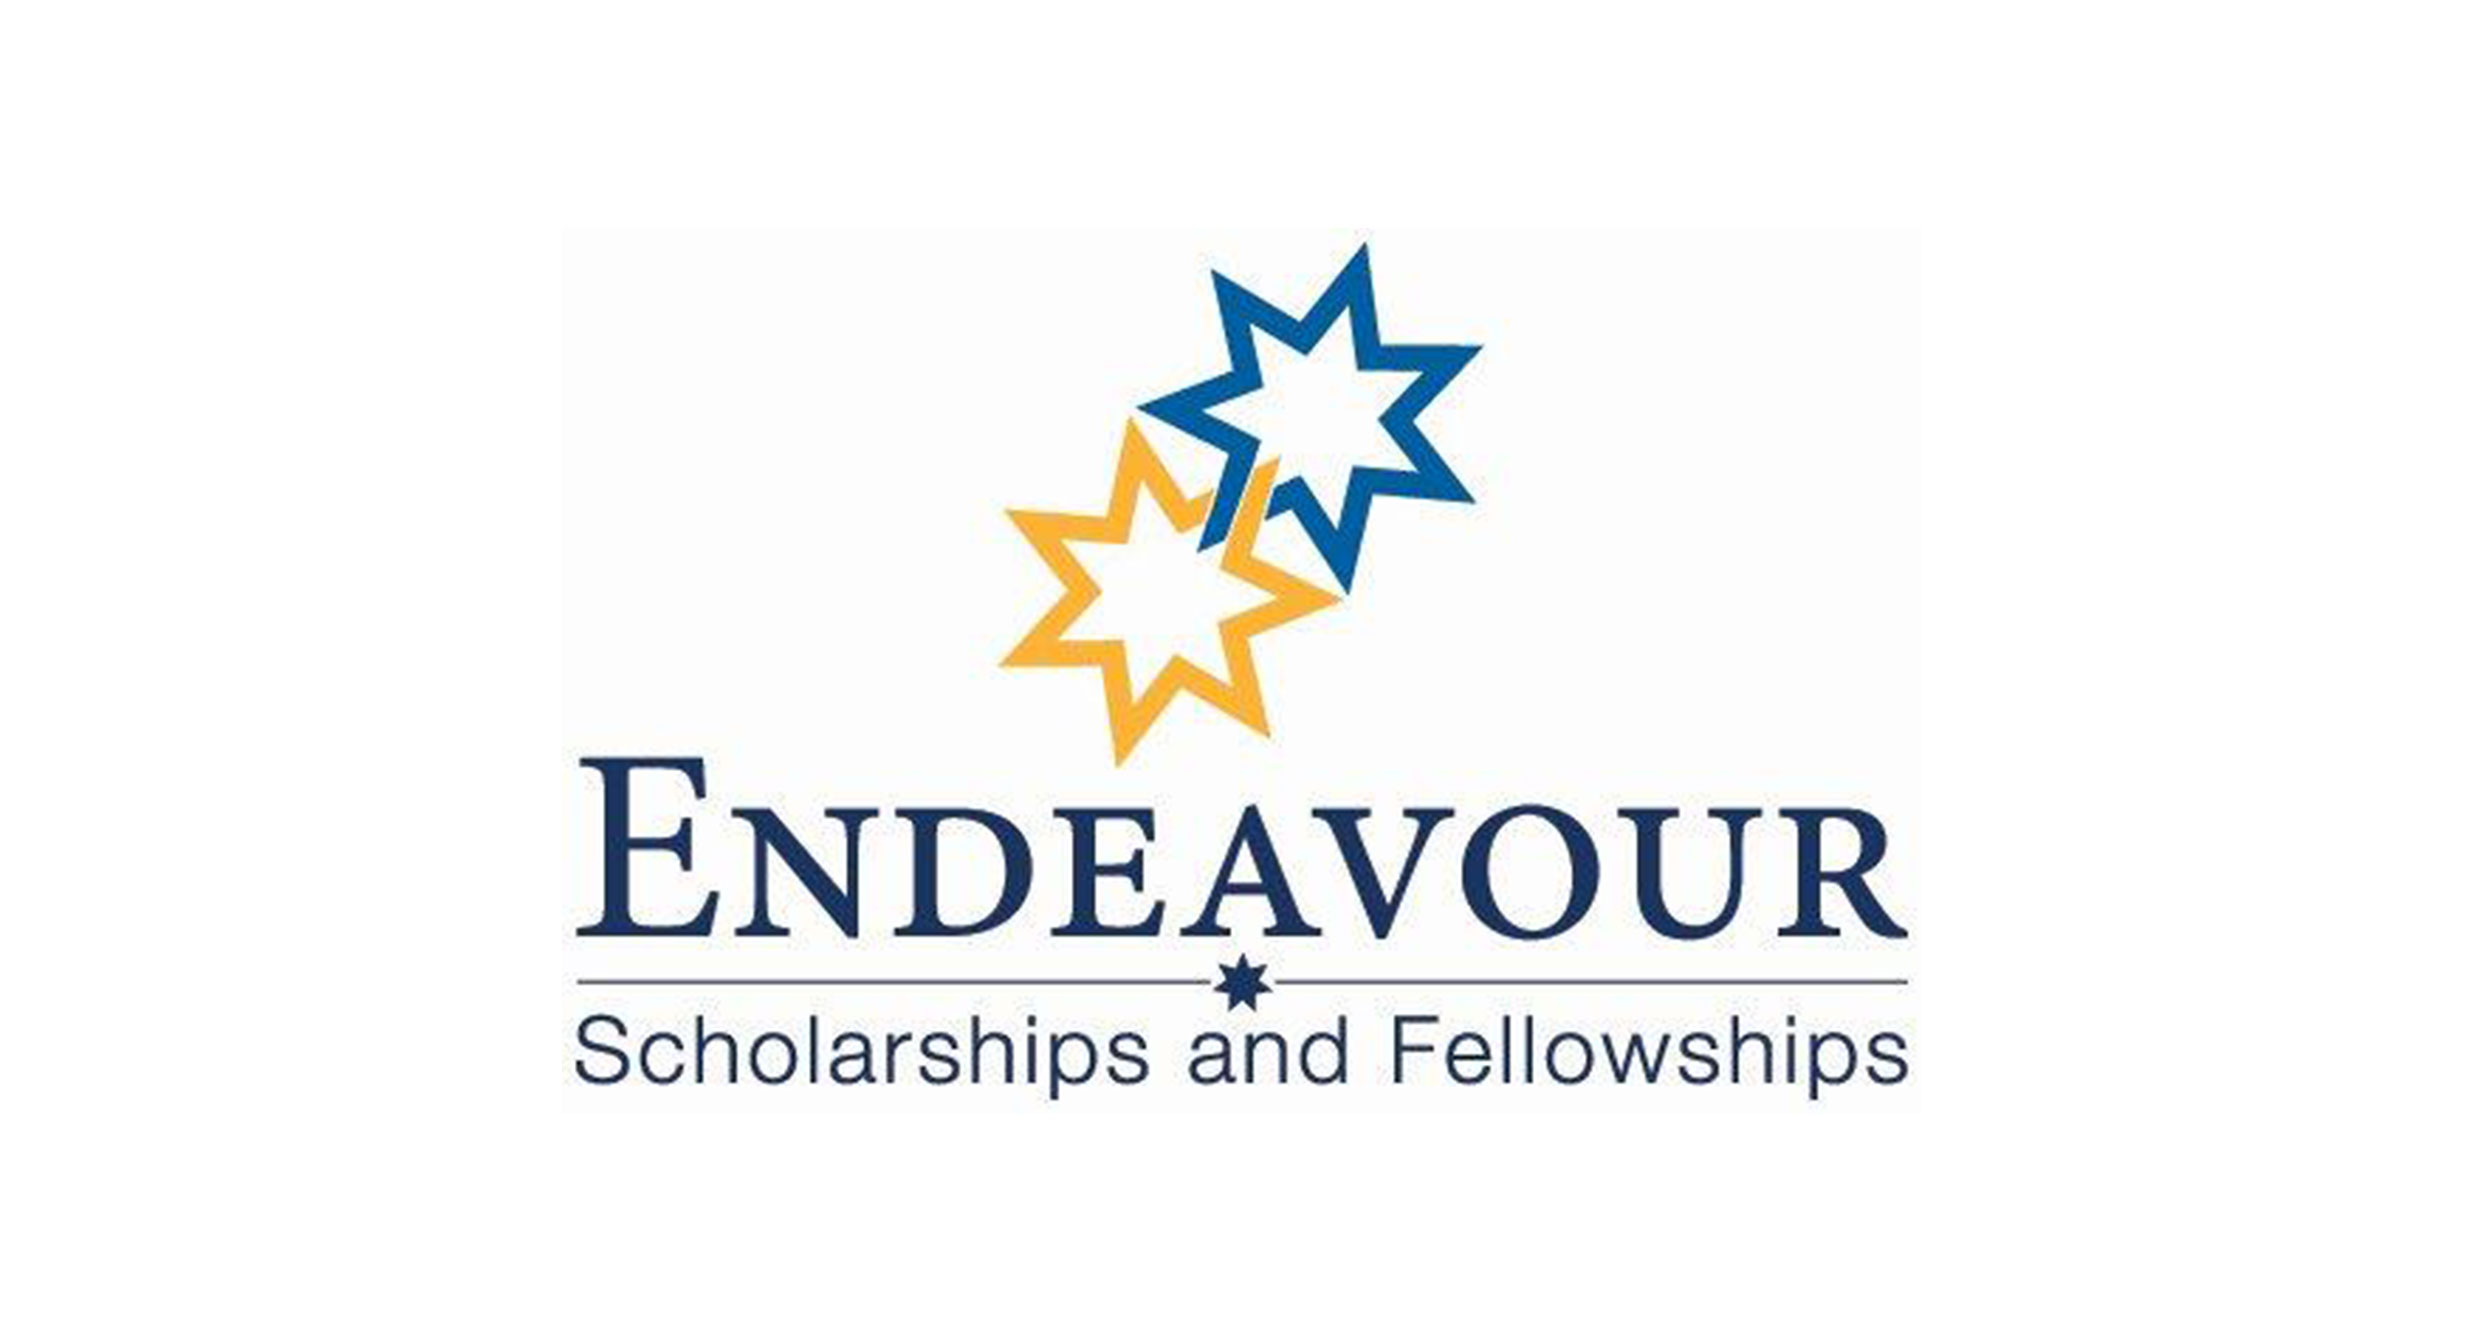 The Endeavour Scholarship and Fellowship Program